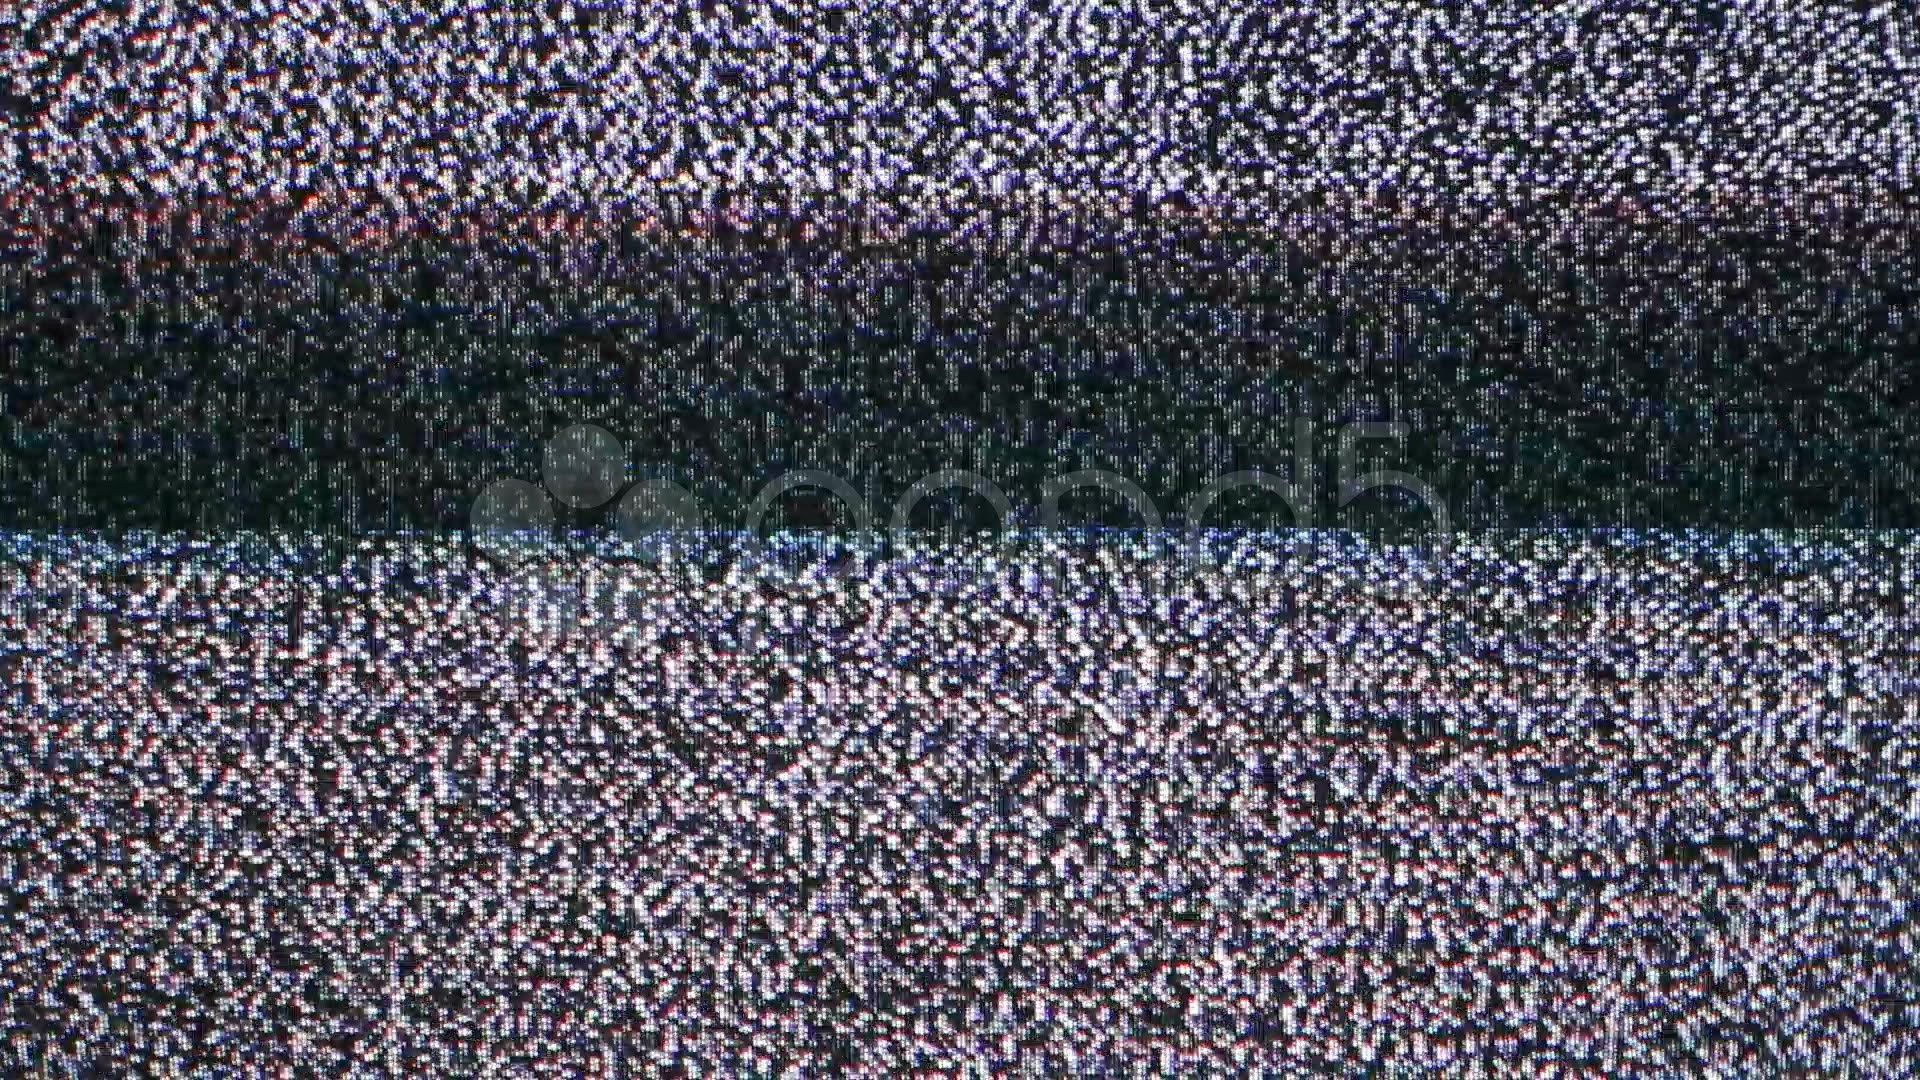 Blank Television Tv Screen With White Noise Or Static Snow And No Signal..  Stock Footage – YouTube